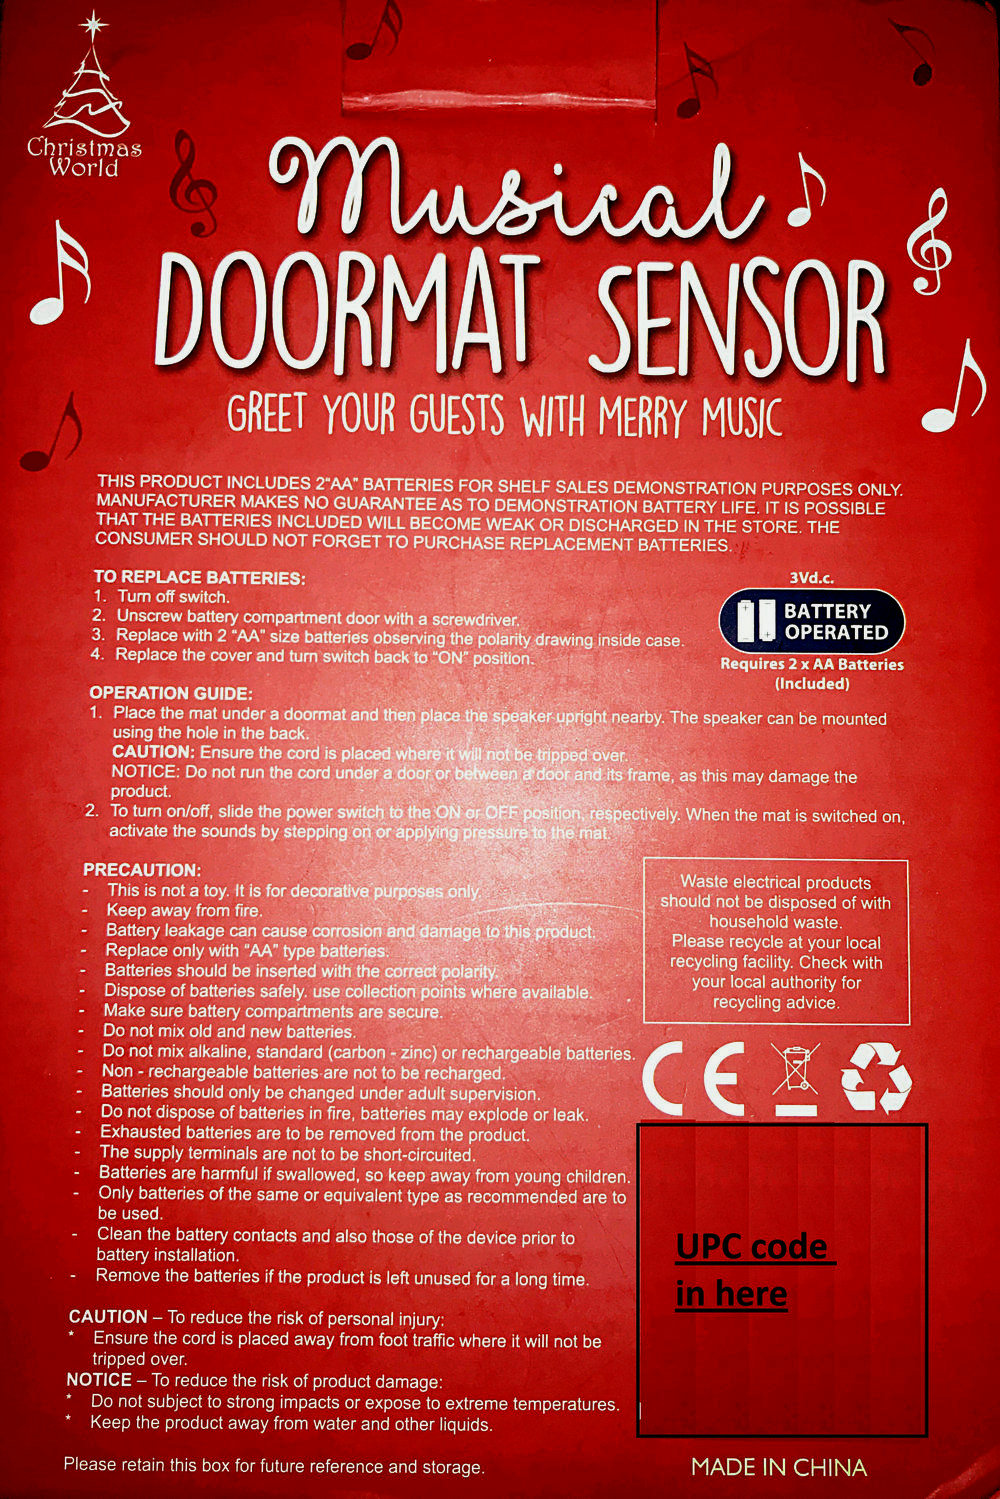 Musical door mat sensor for Merry Christmas